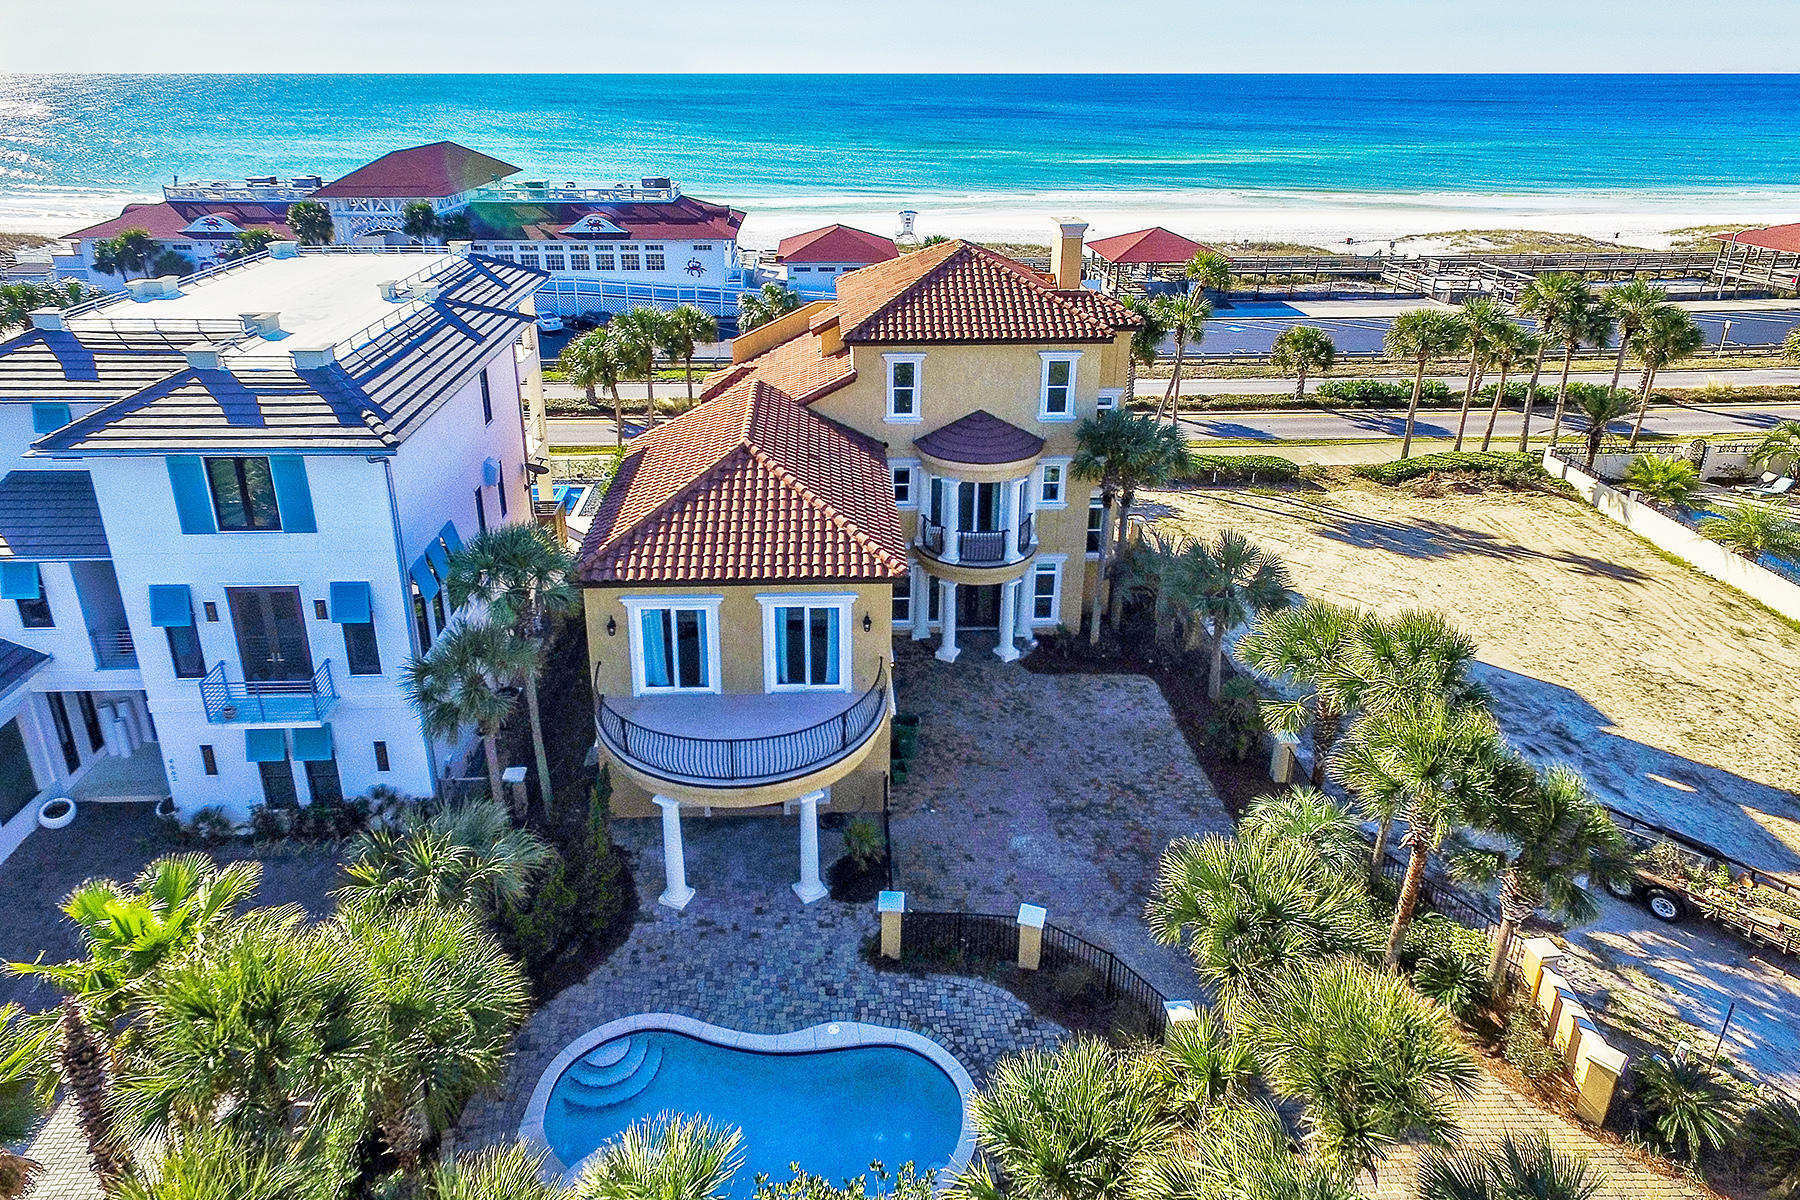 Tek Ailelik Ev için Satış at BEACH SIDE MANOR WITH UNOBSTRUCTED GULF VIEWS 4660 Destiny Way Destin, Florida, 32541 Amerika Birleşik Devletleri